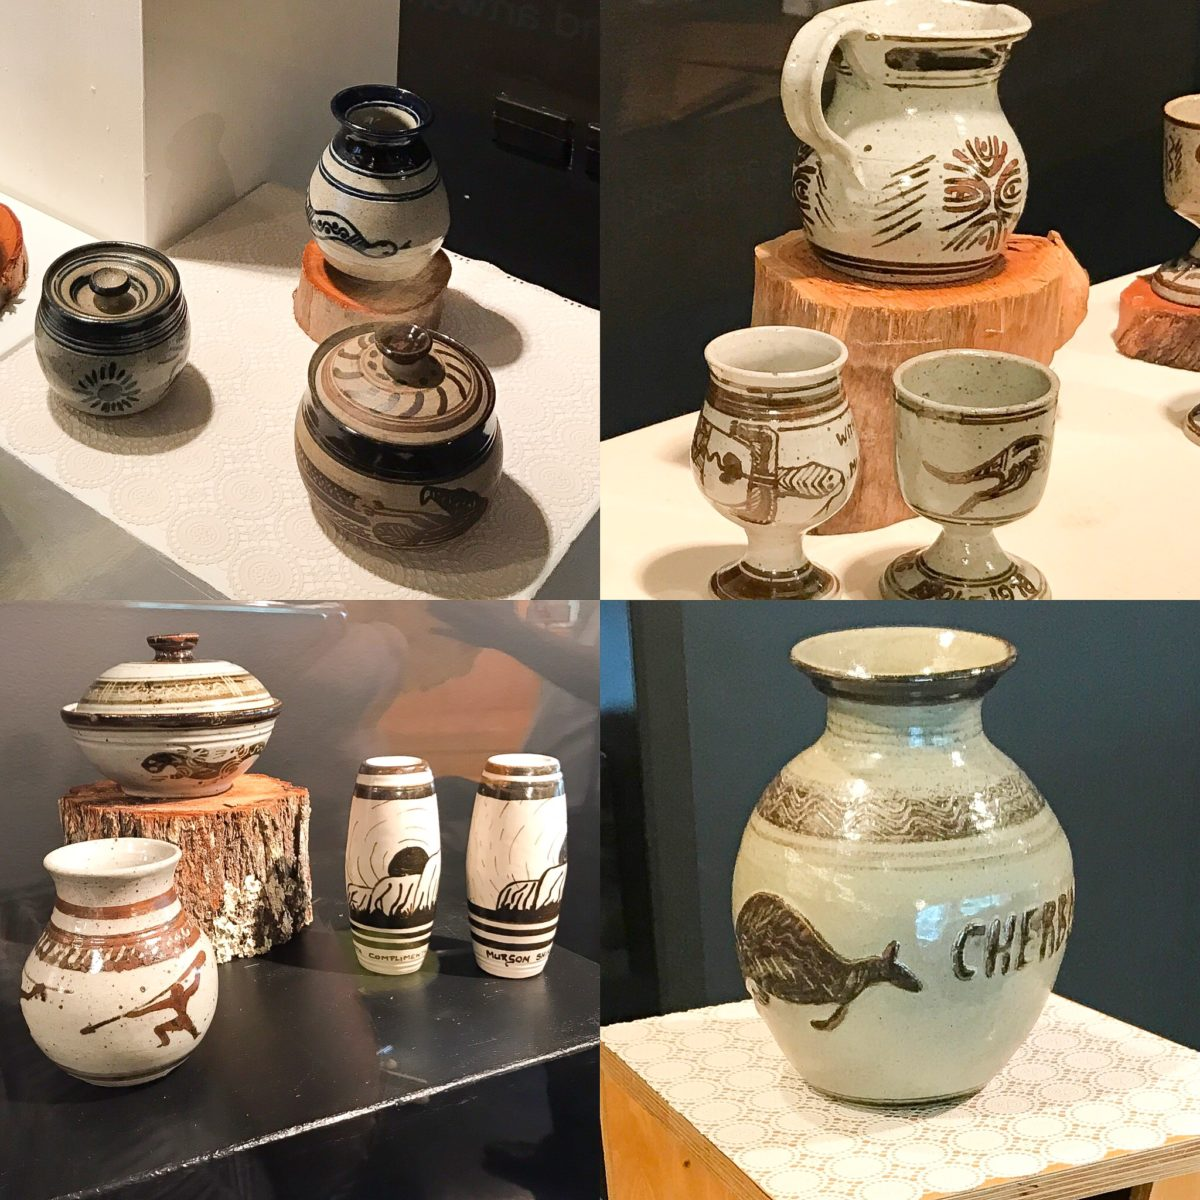 Image collage of four images of pottery by the Cherbourg Potters.